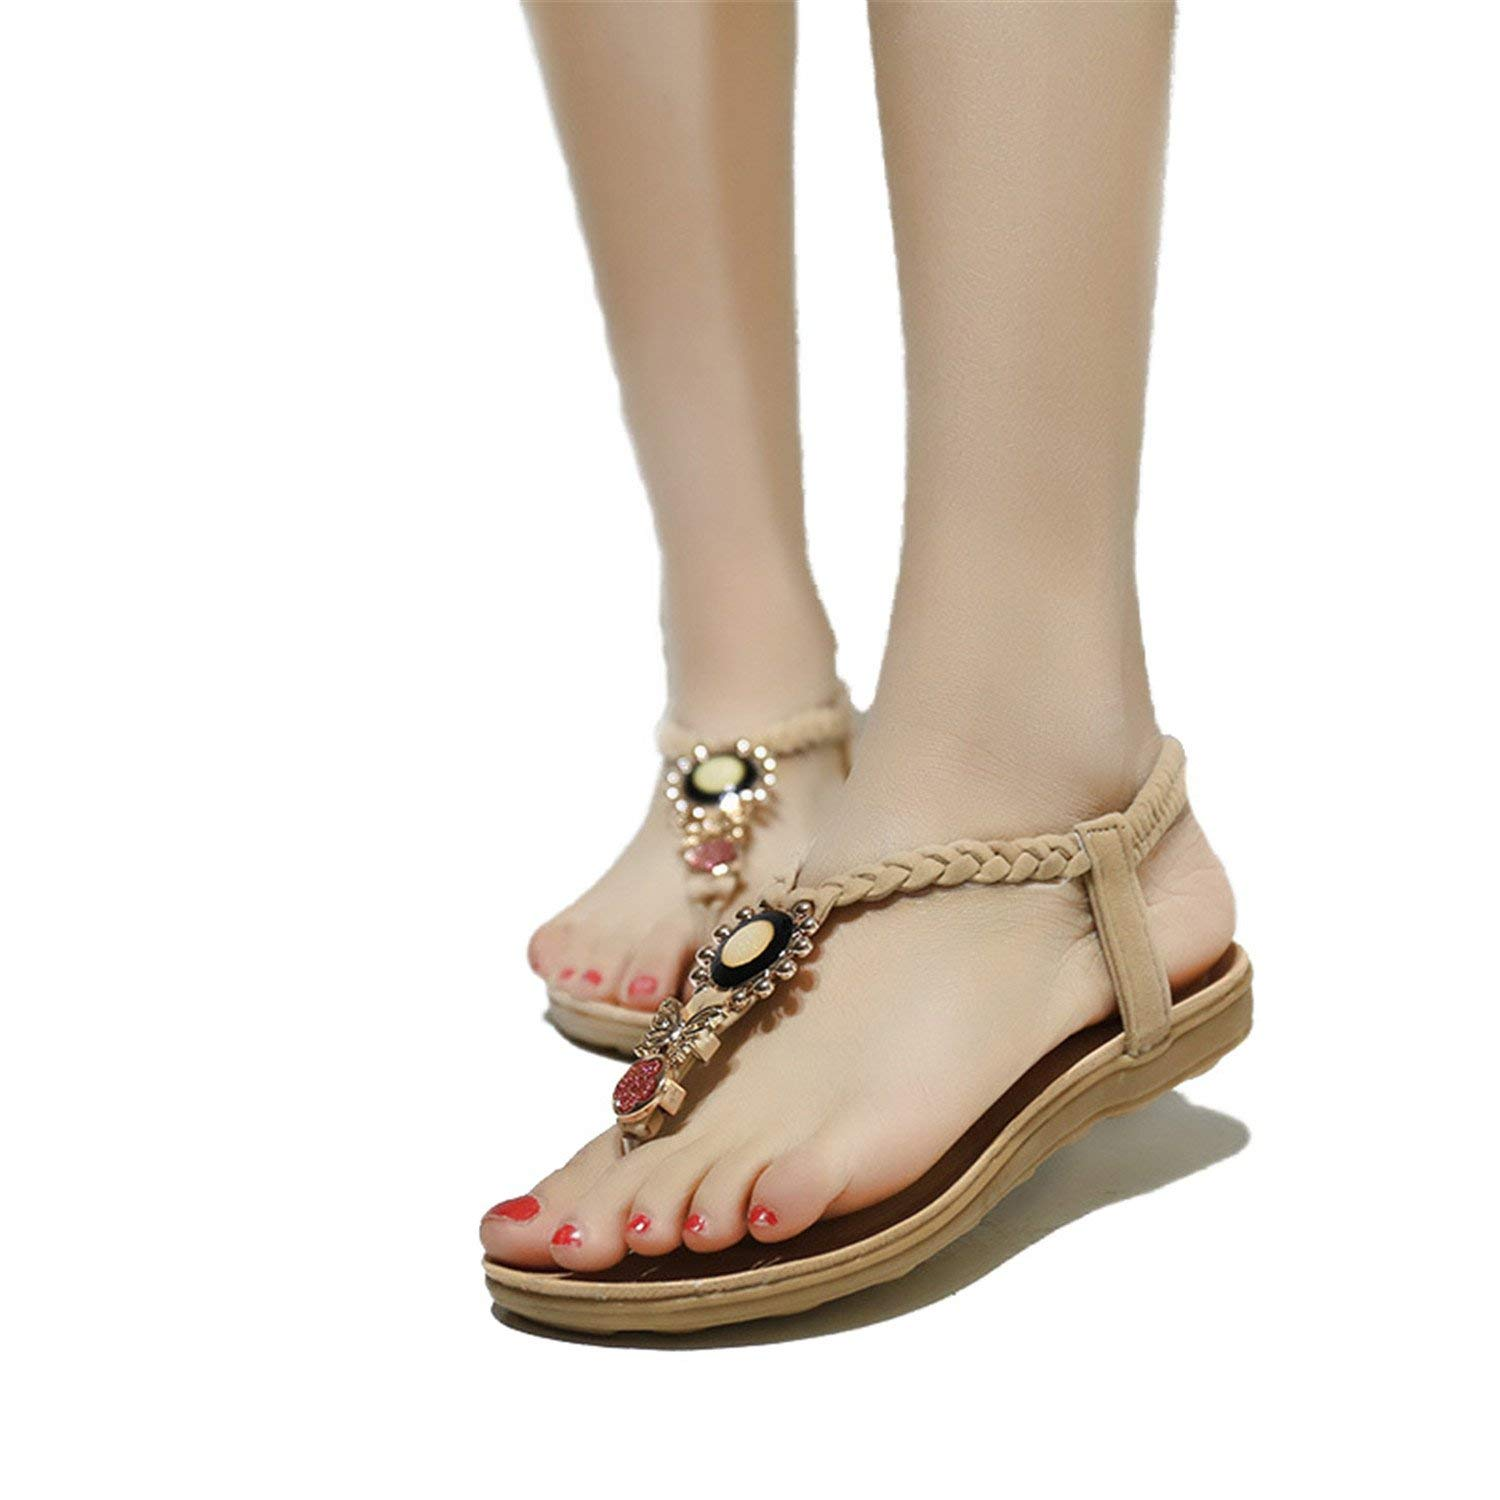 MET RXL Lady,Summer,Leisure,Low Heels,Slippers//Round Head,Flat,A-line Slipper,Beach Shoes